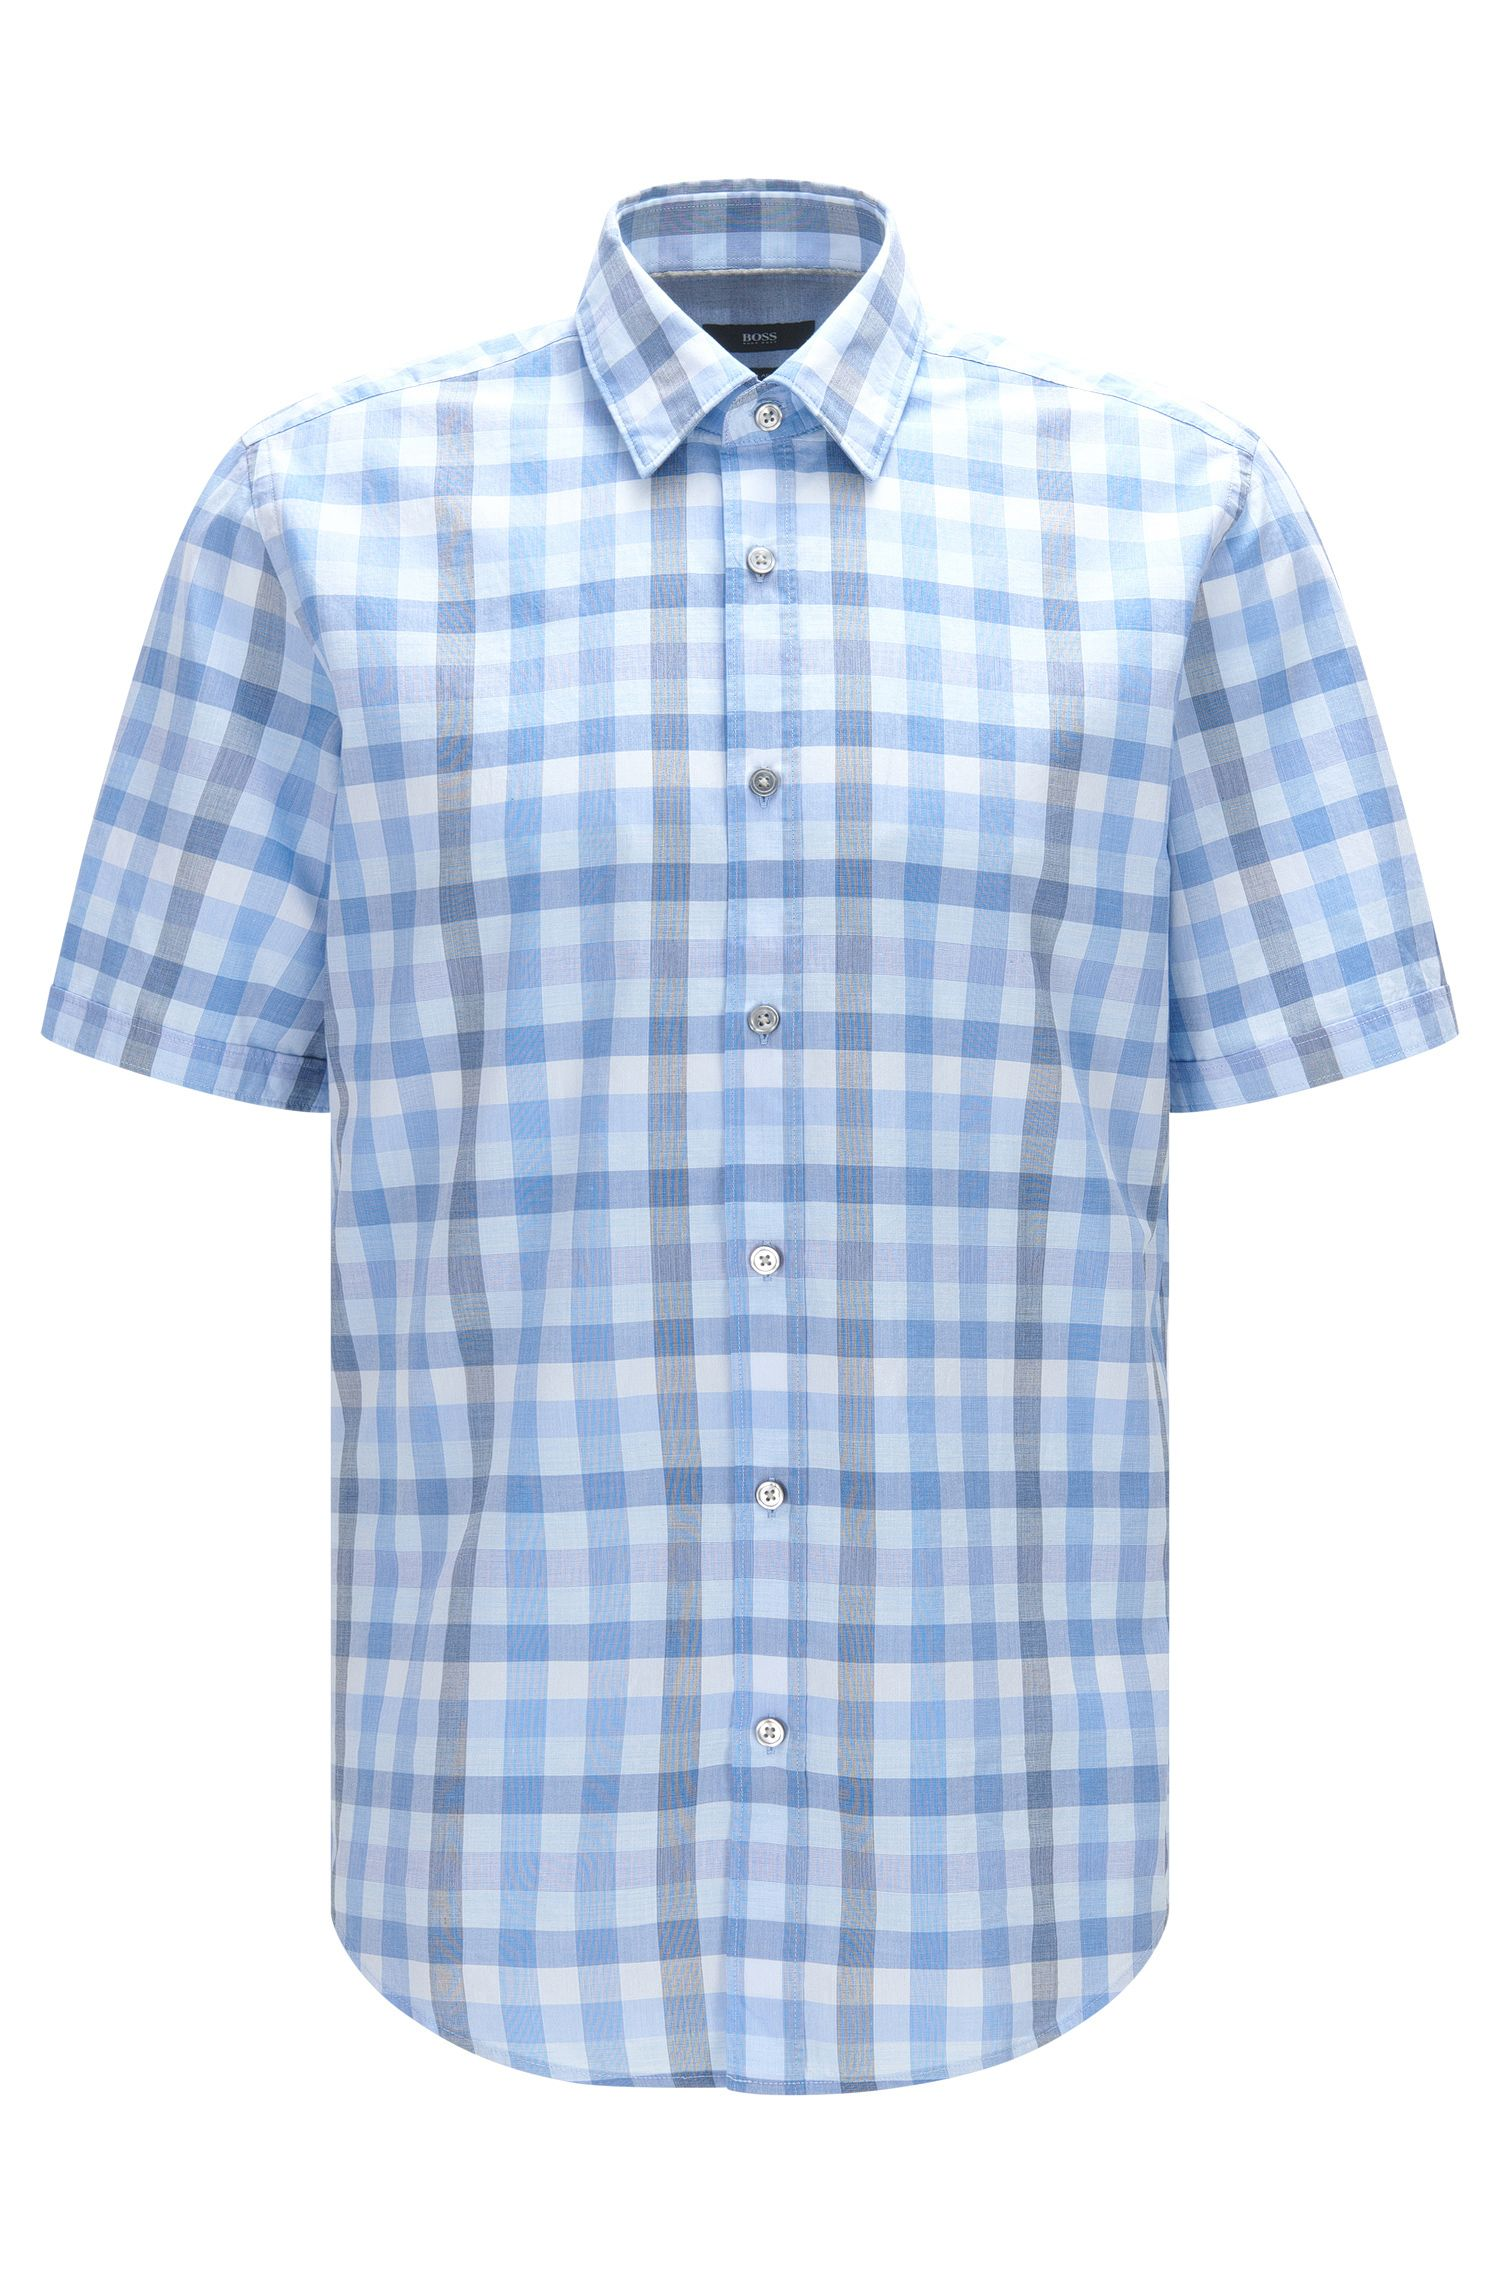 'Luka' | Regular Fit, Check Cotton Button Down Shirt